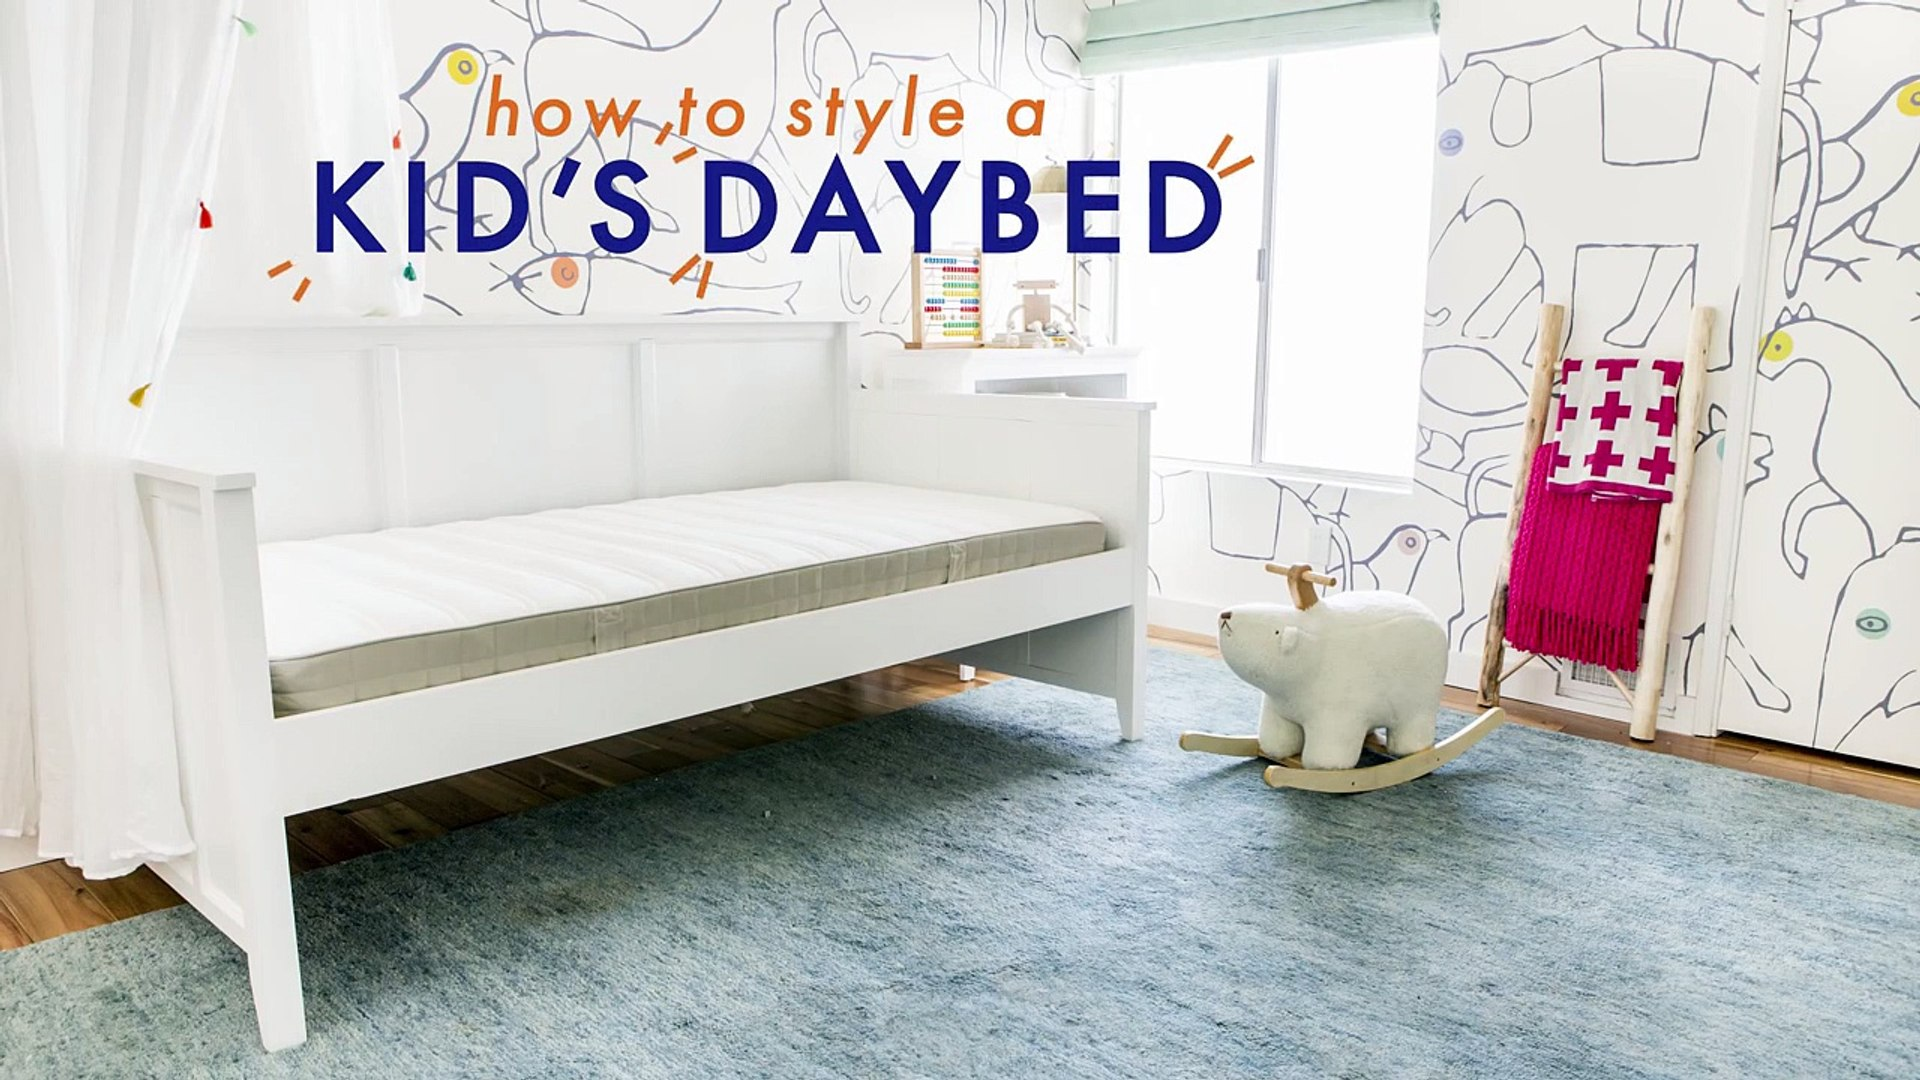 How To Style A Kid's Daybed-7u